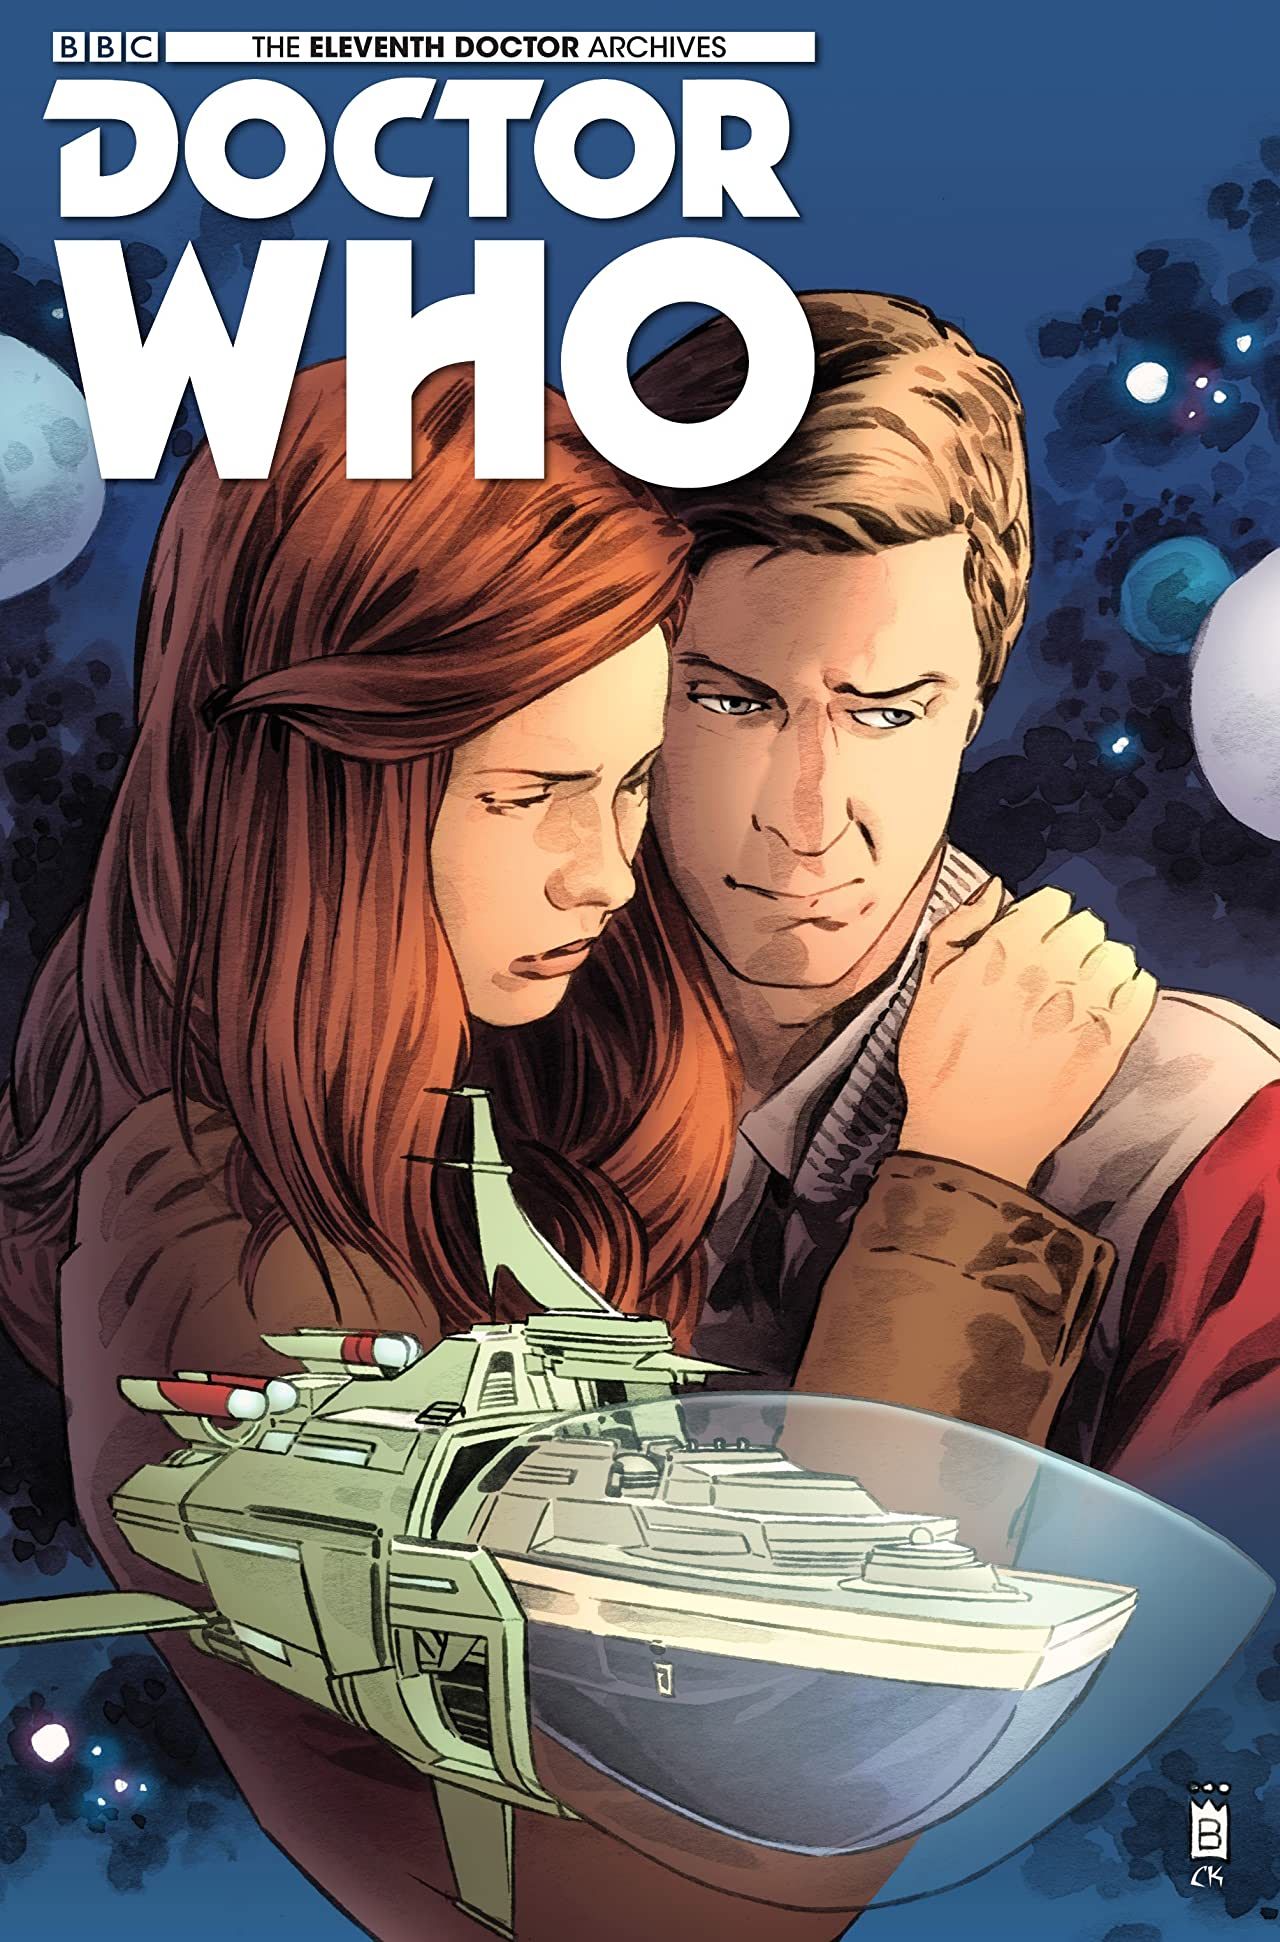 Doctor Who: The Eleventh Doctor Archives #27